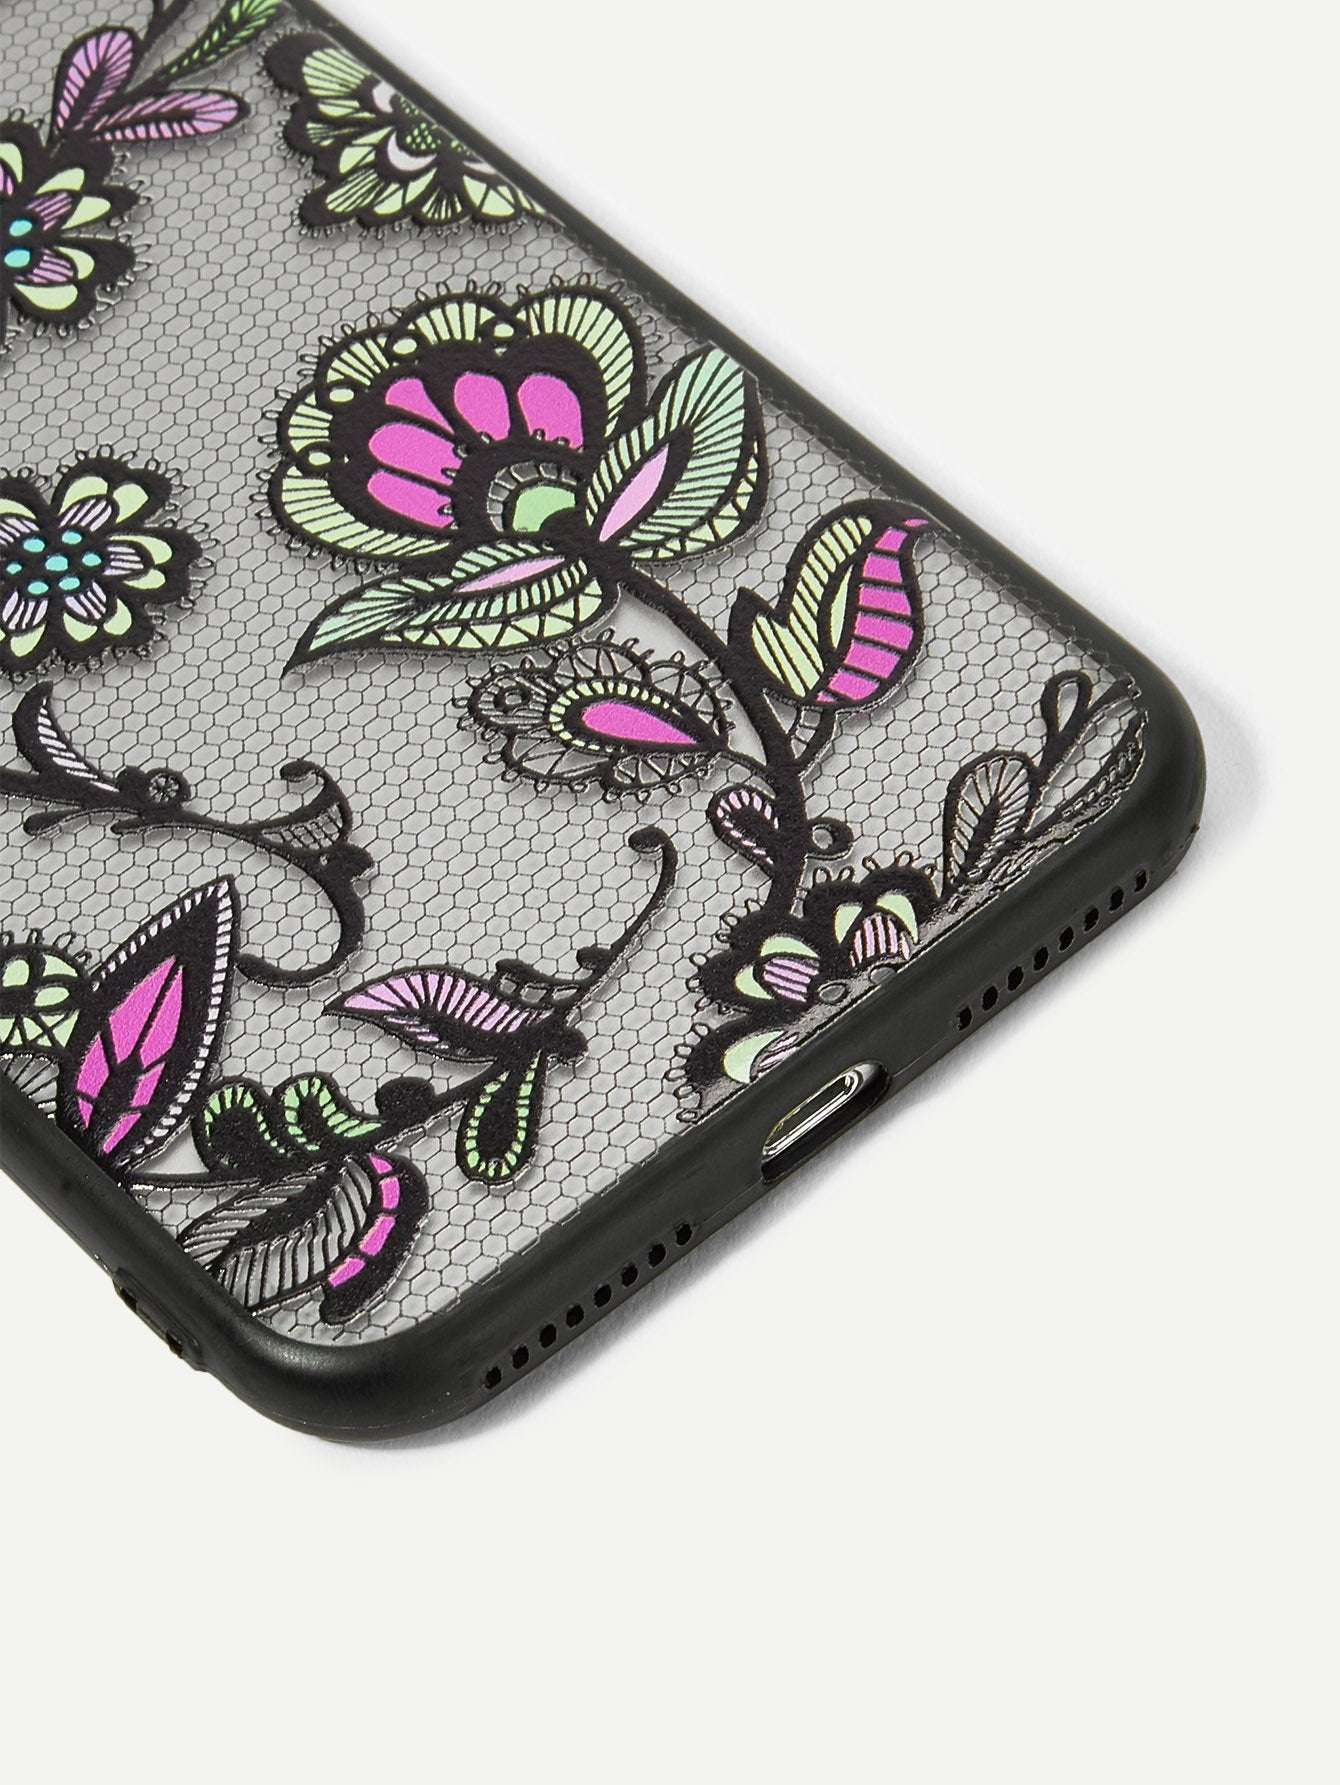 Flower Pattern iPhone Case - BrandsGuru